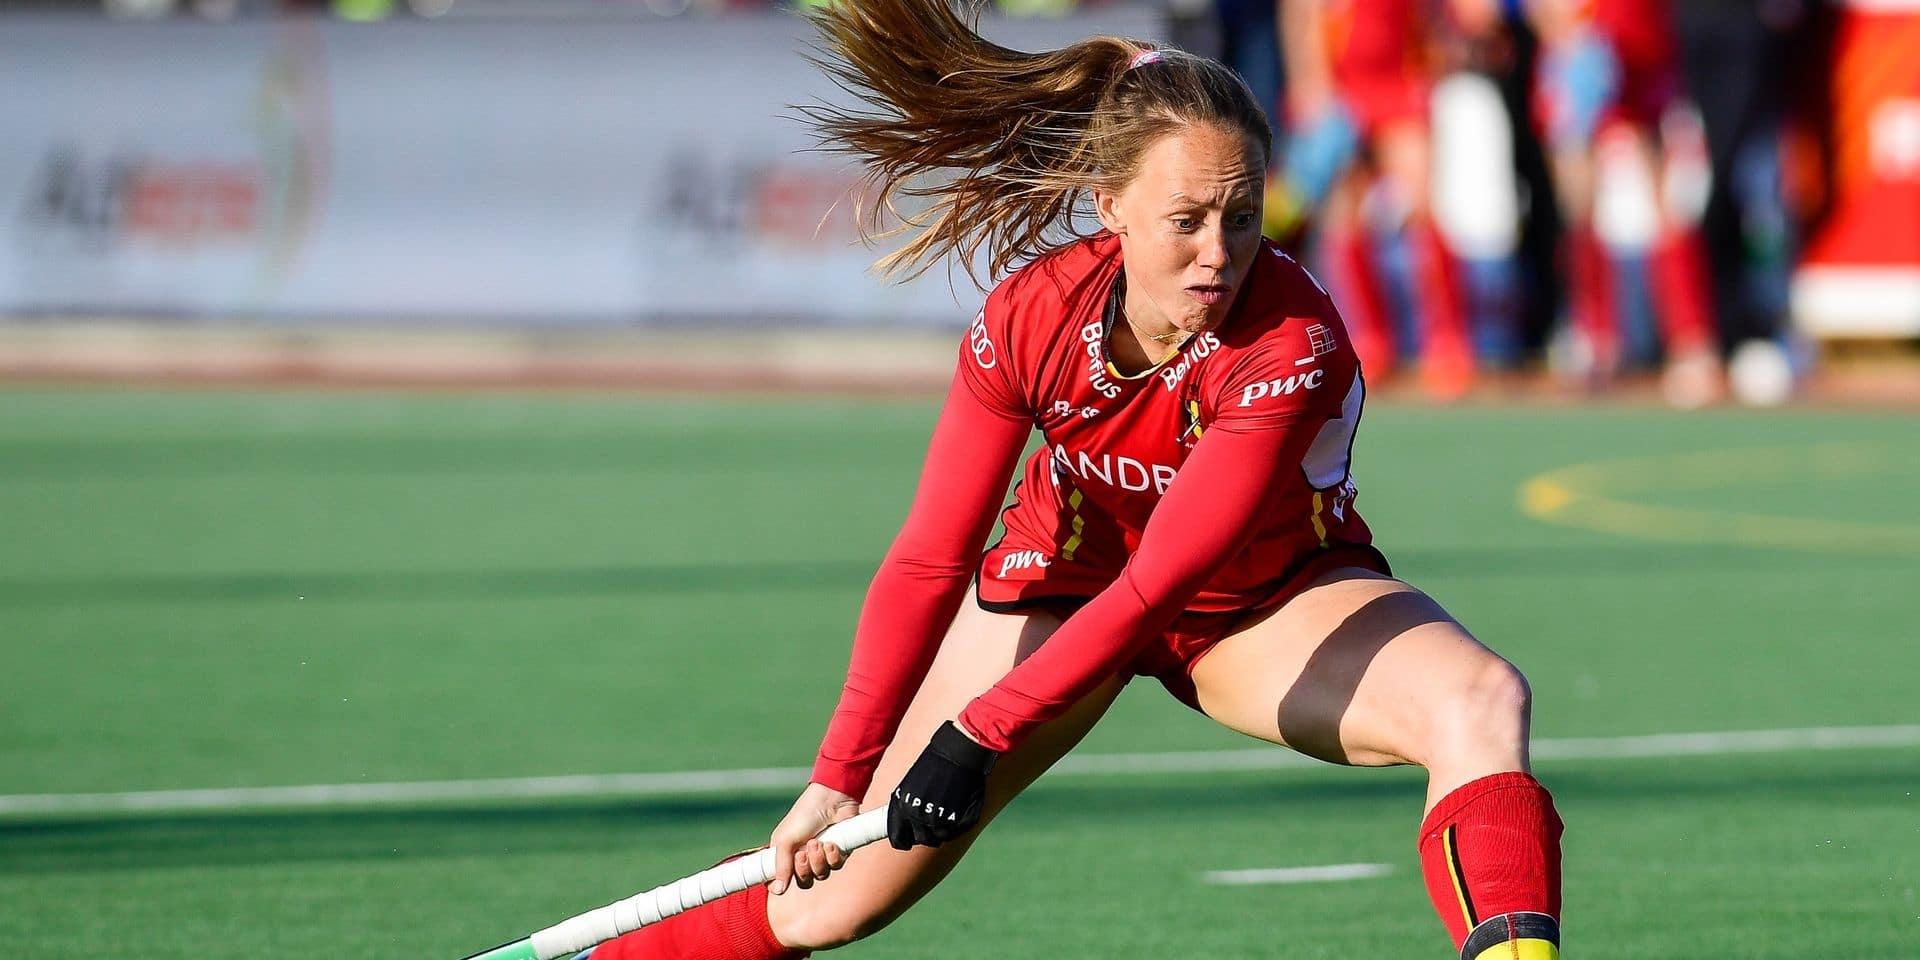 Belgium's Jill Boon pictured in action during a field hockey game between Belgium's national team Red Panthers and United States of America, Wednesday 10 April 2019 in Brussels, game 6/16 of the women's FIH Pro League competition. BELGA PHOTO LAURIE DIEFFEMBACQ